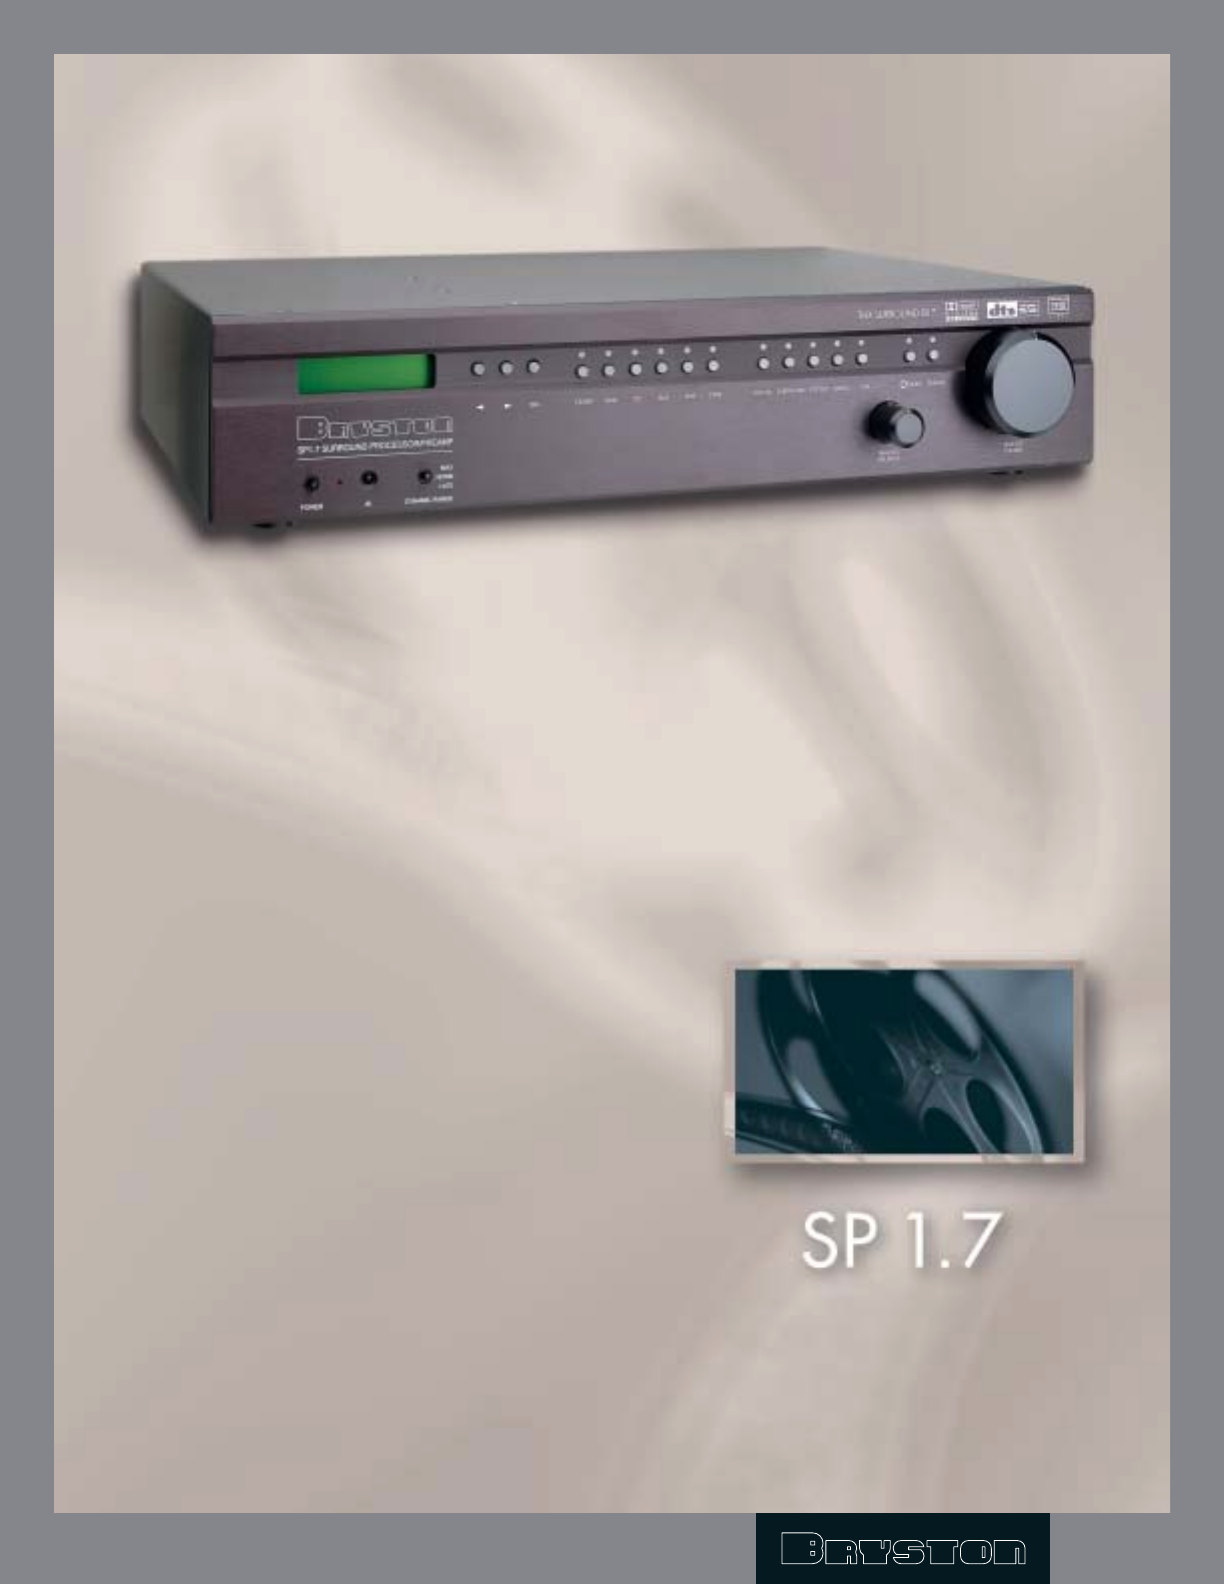 bryston stereo amplifier sp 1 7 user guide manualsonline com rh audio manualsonline com Bryston 28 Bryston BDP-2